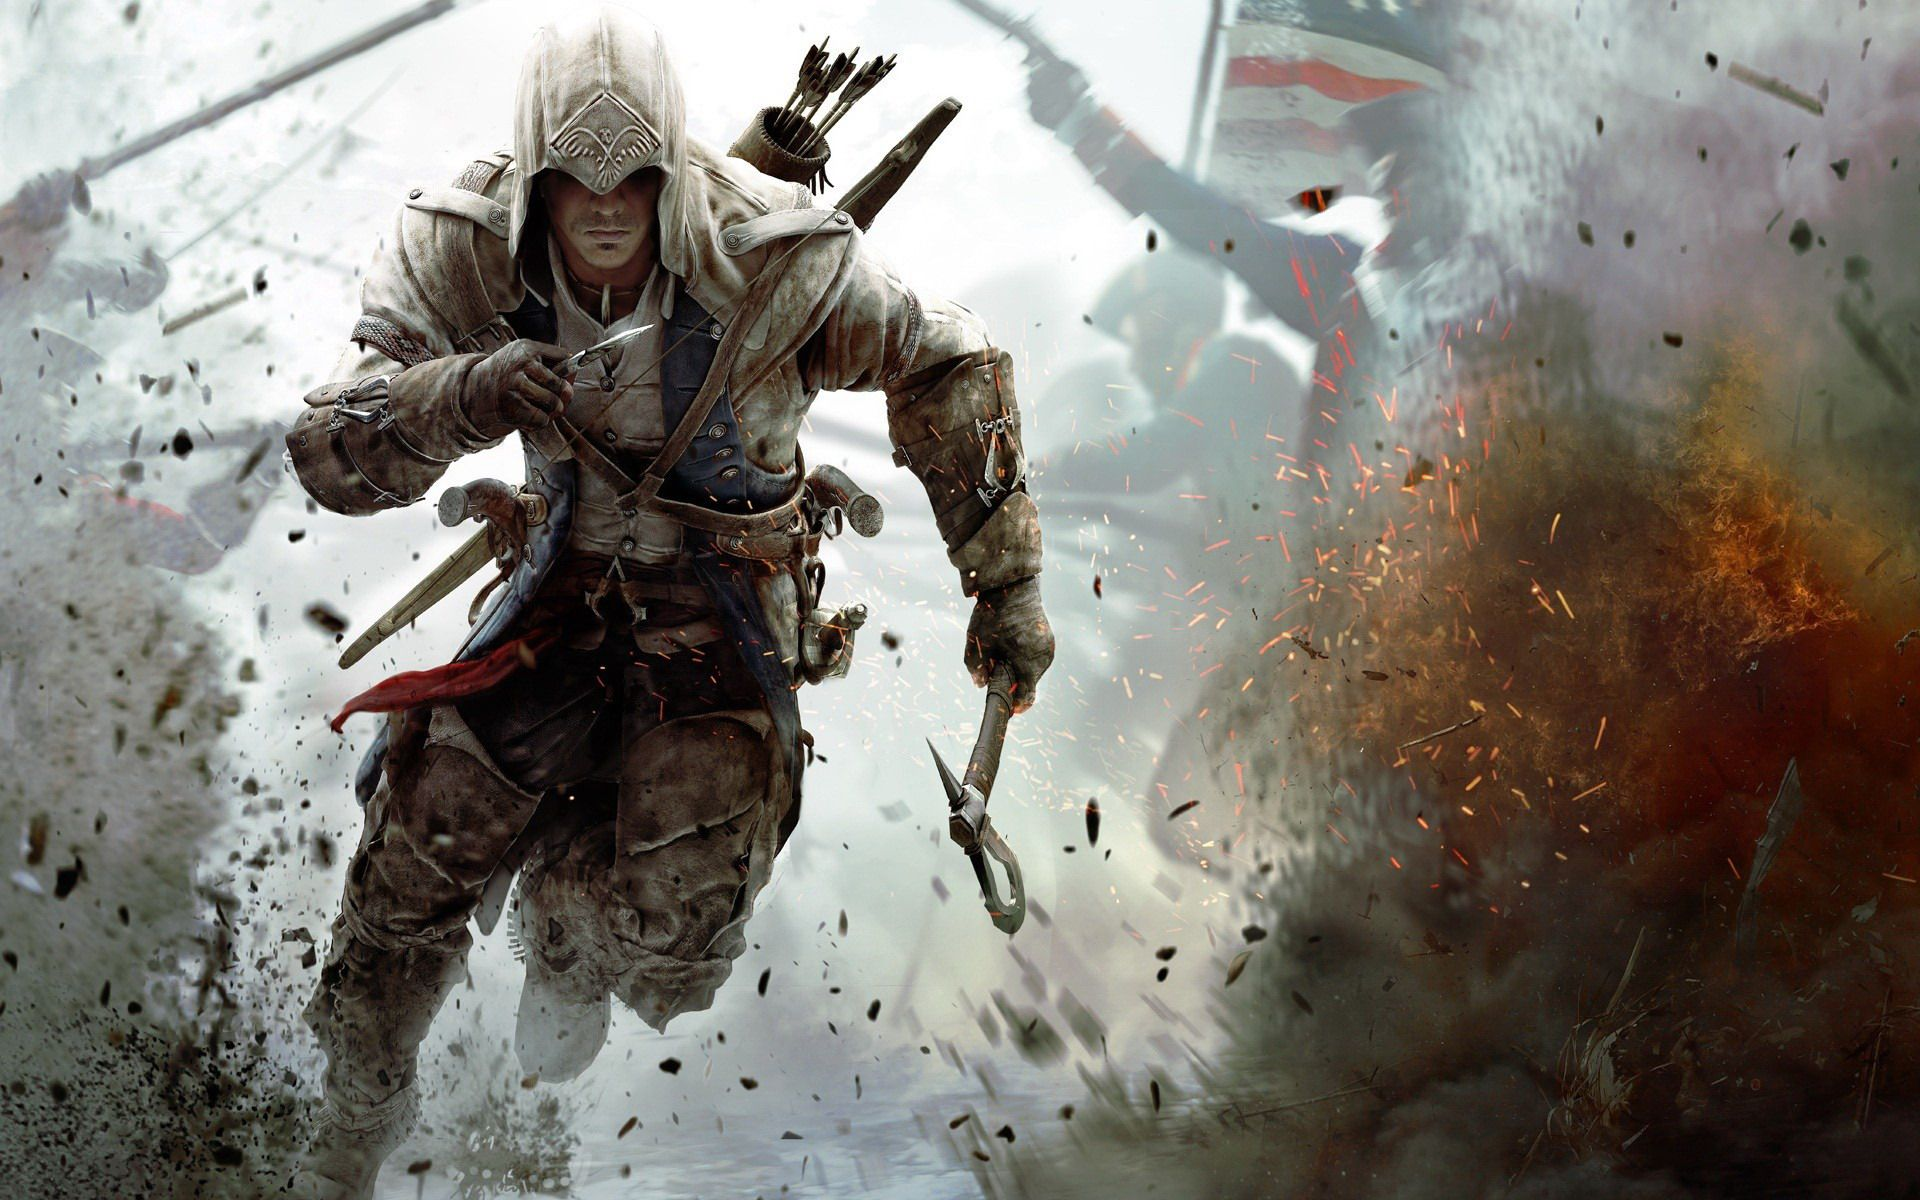 Connor, protagonista de Assassin's Creed III